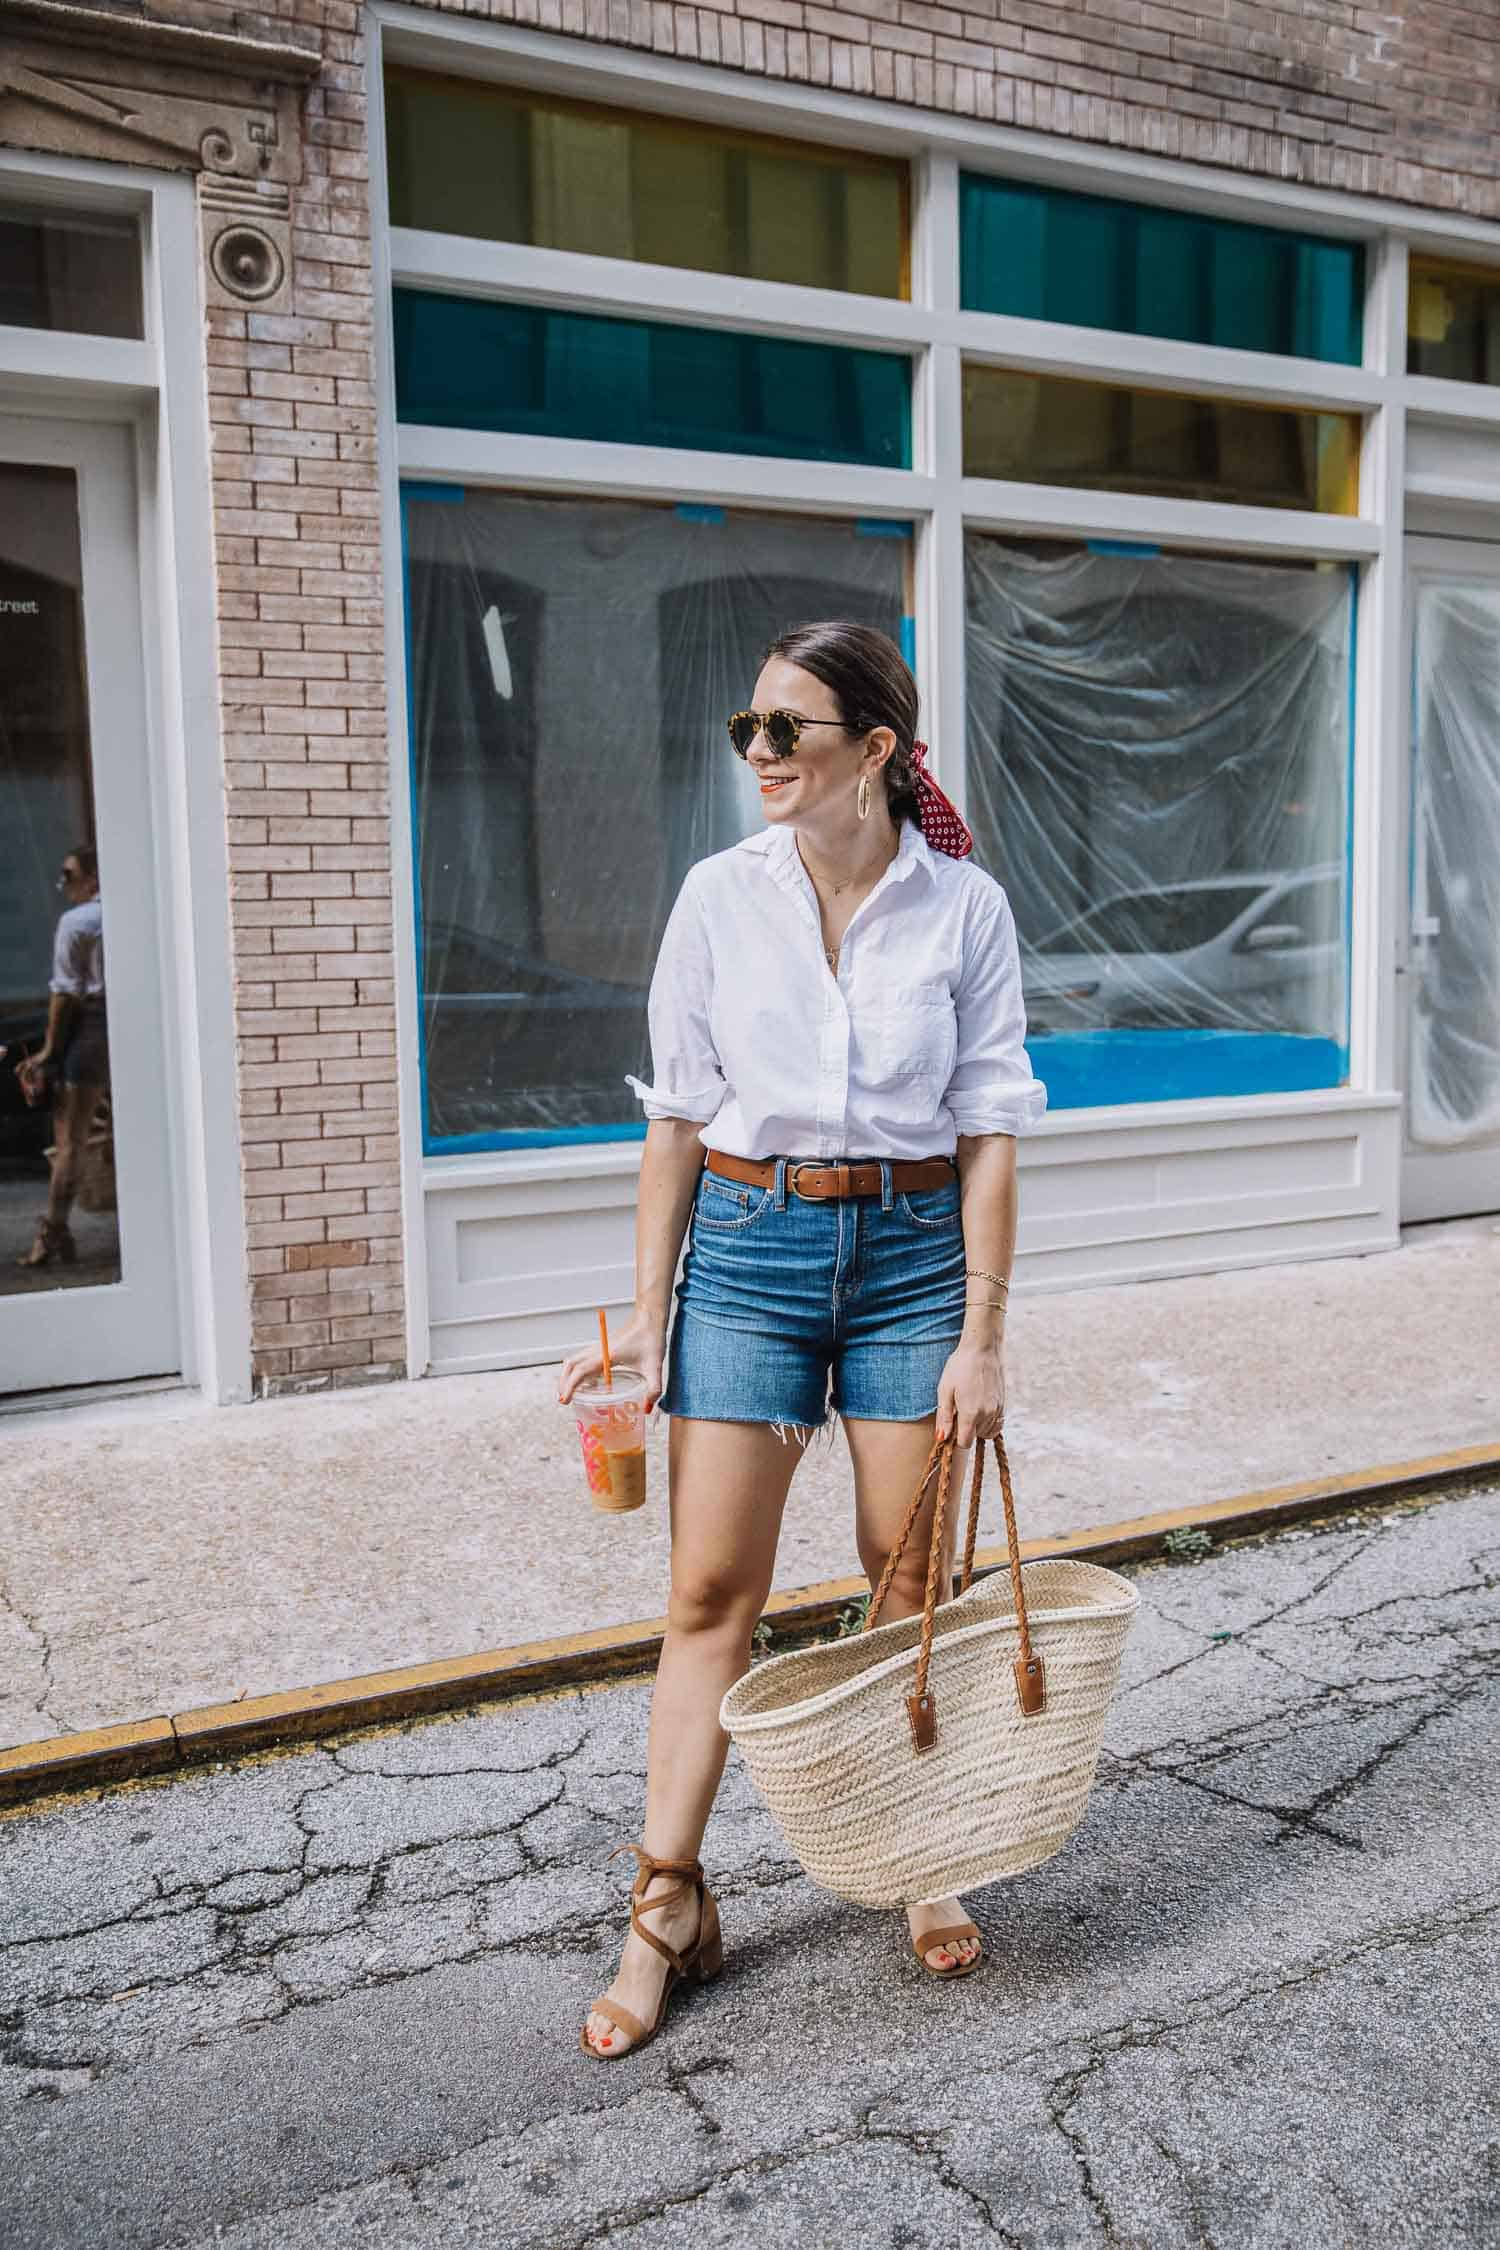 Classic White Button-Up With Denim Shorts